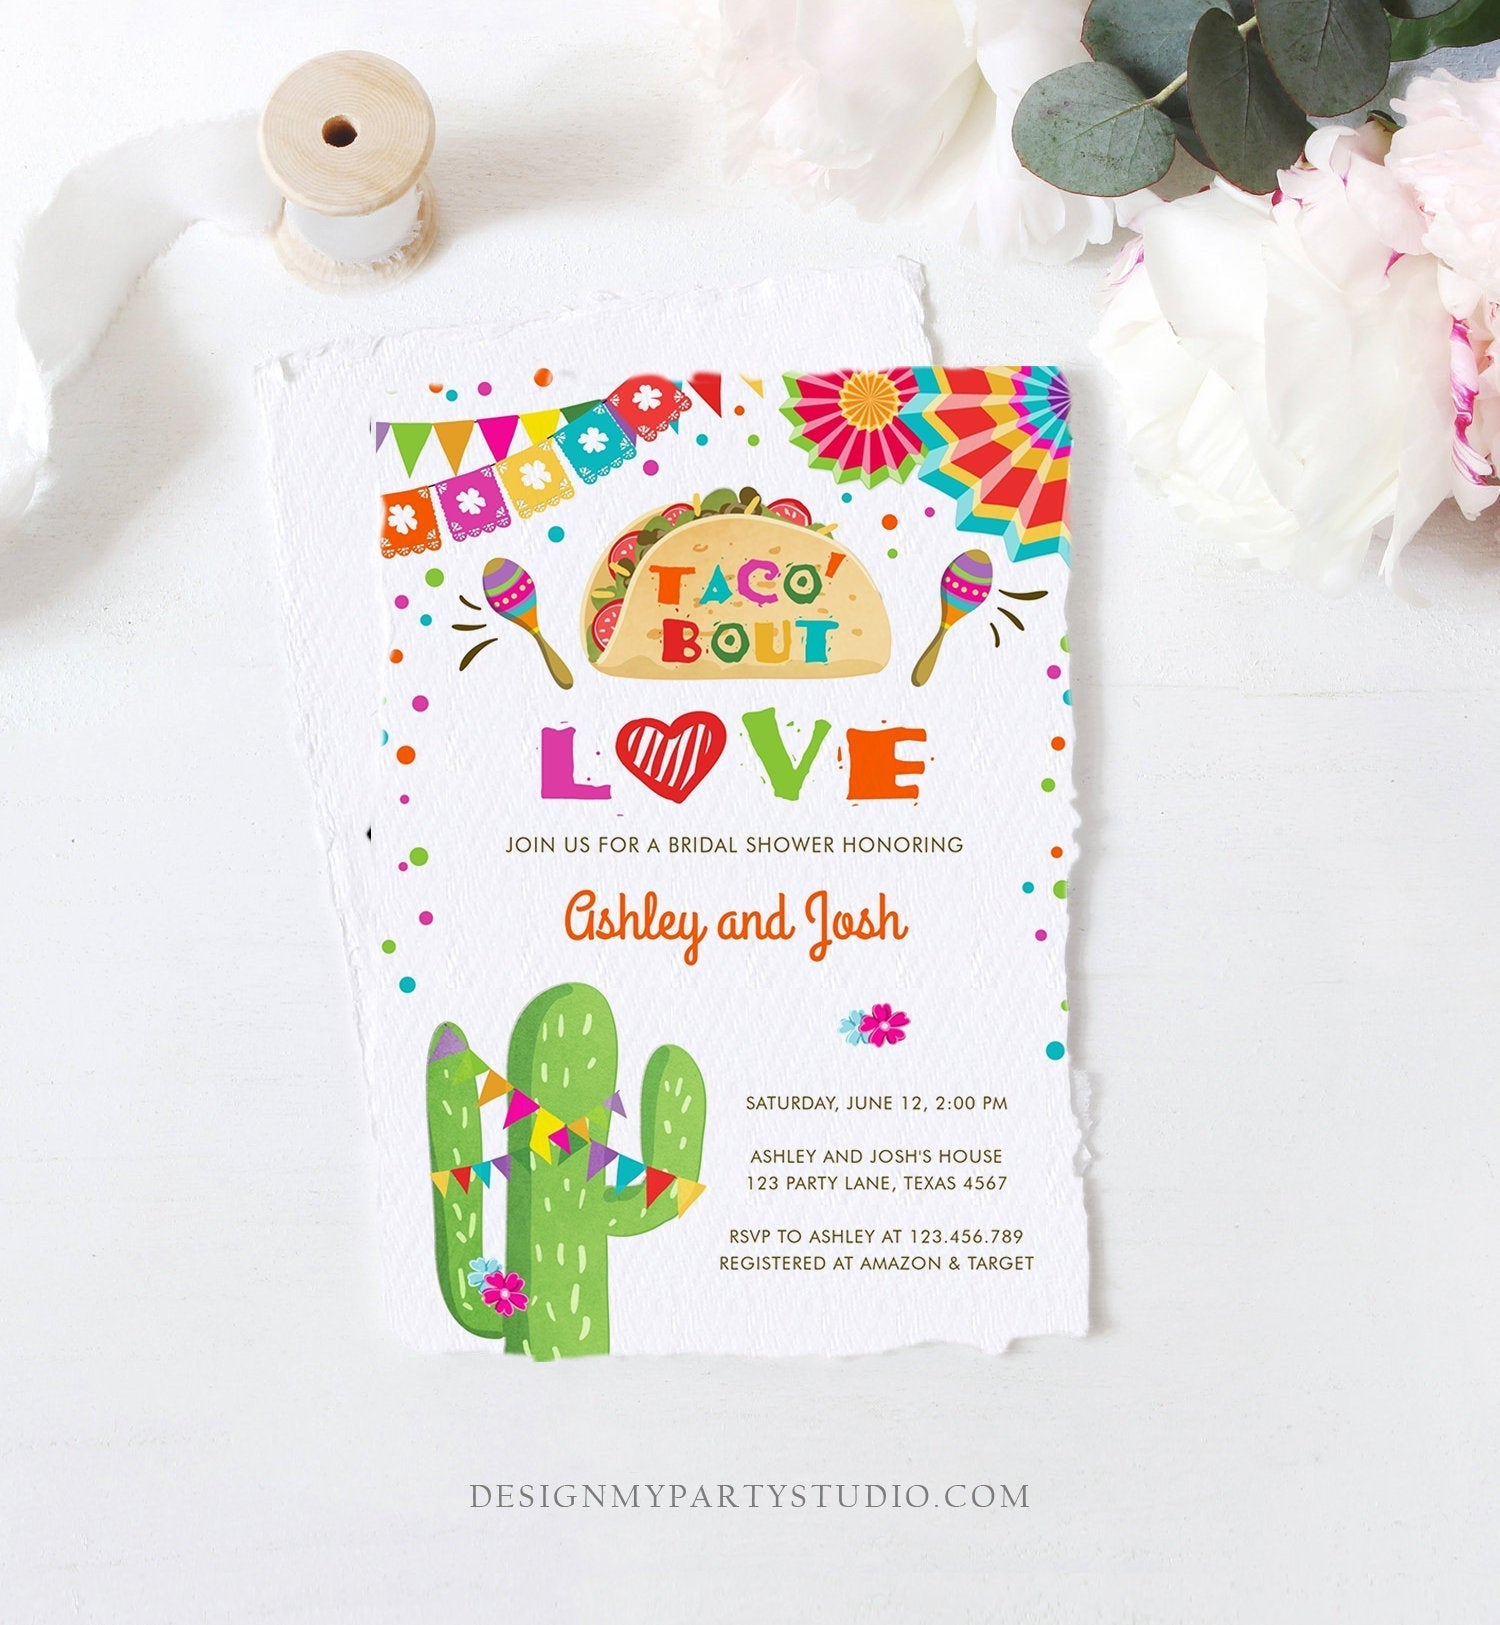 Editable Taco Bout Love Fiesta Couples Shower Invitation Coed Joined Cactus Mexican Instant Digital Download Corjl Template Printable 0045